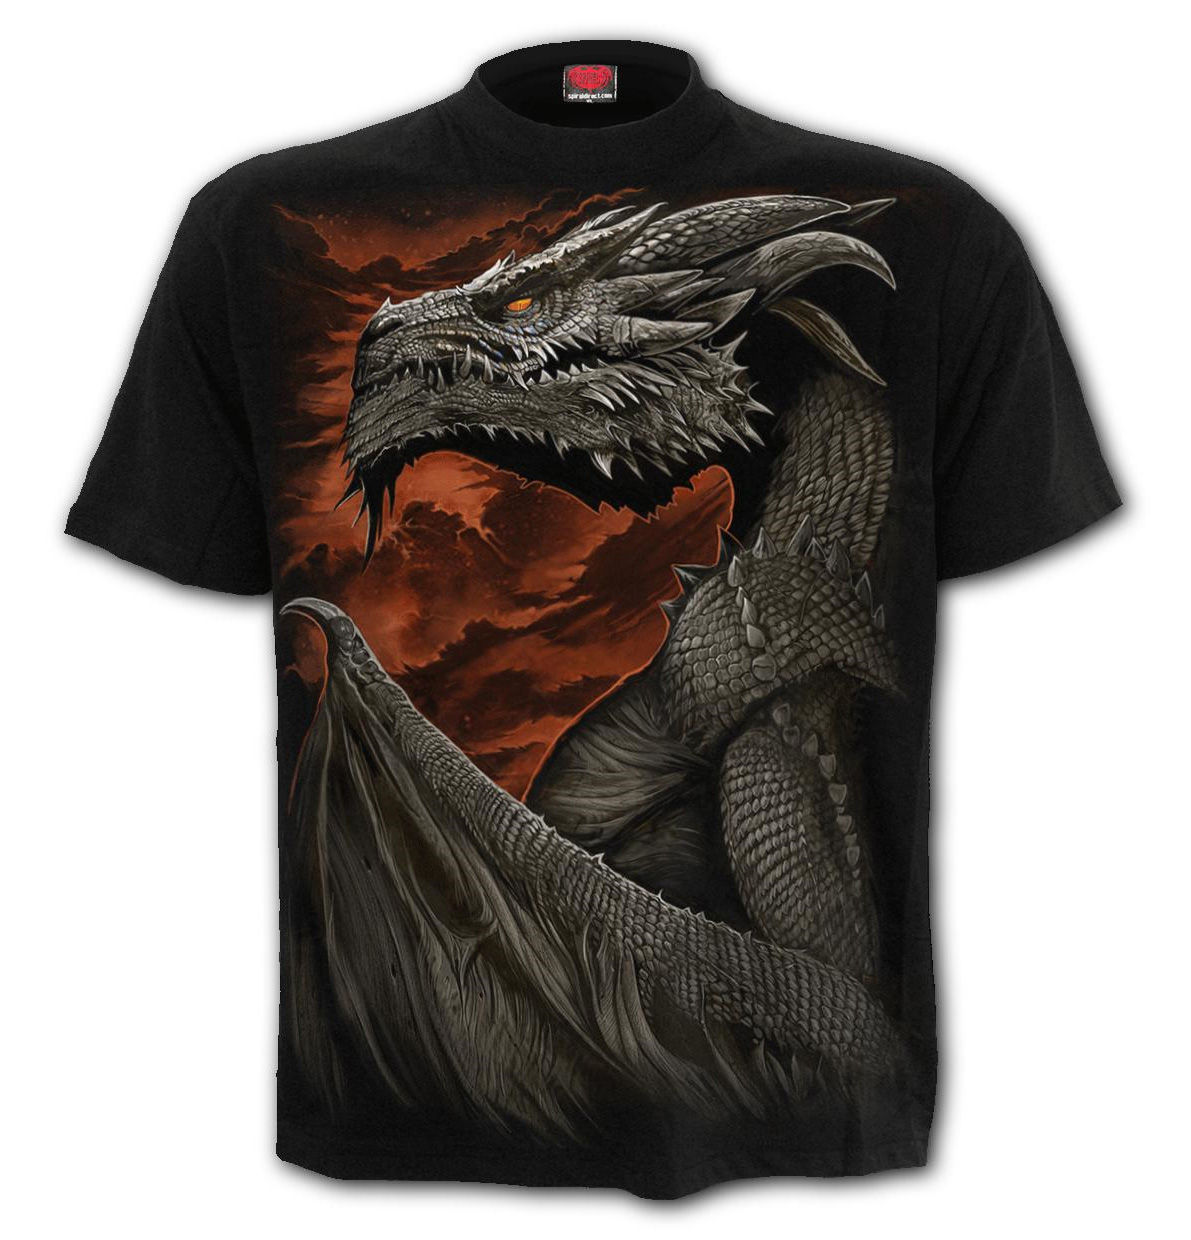 SPIRAL-Direct-Unisex-T-Shirt-Biker-Goth-MAJESTIC-DRACO-Dragon-All-Sizes thumbnail 19